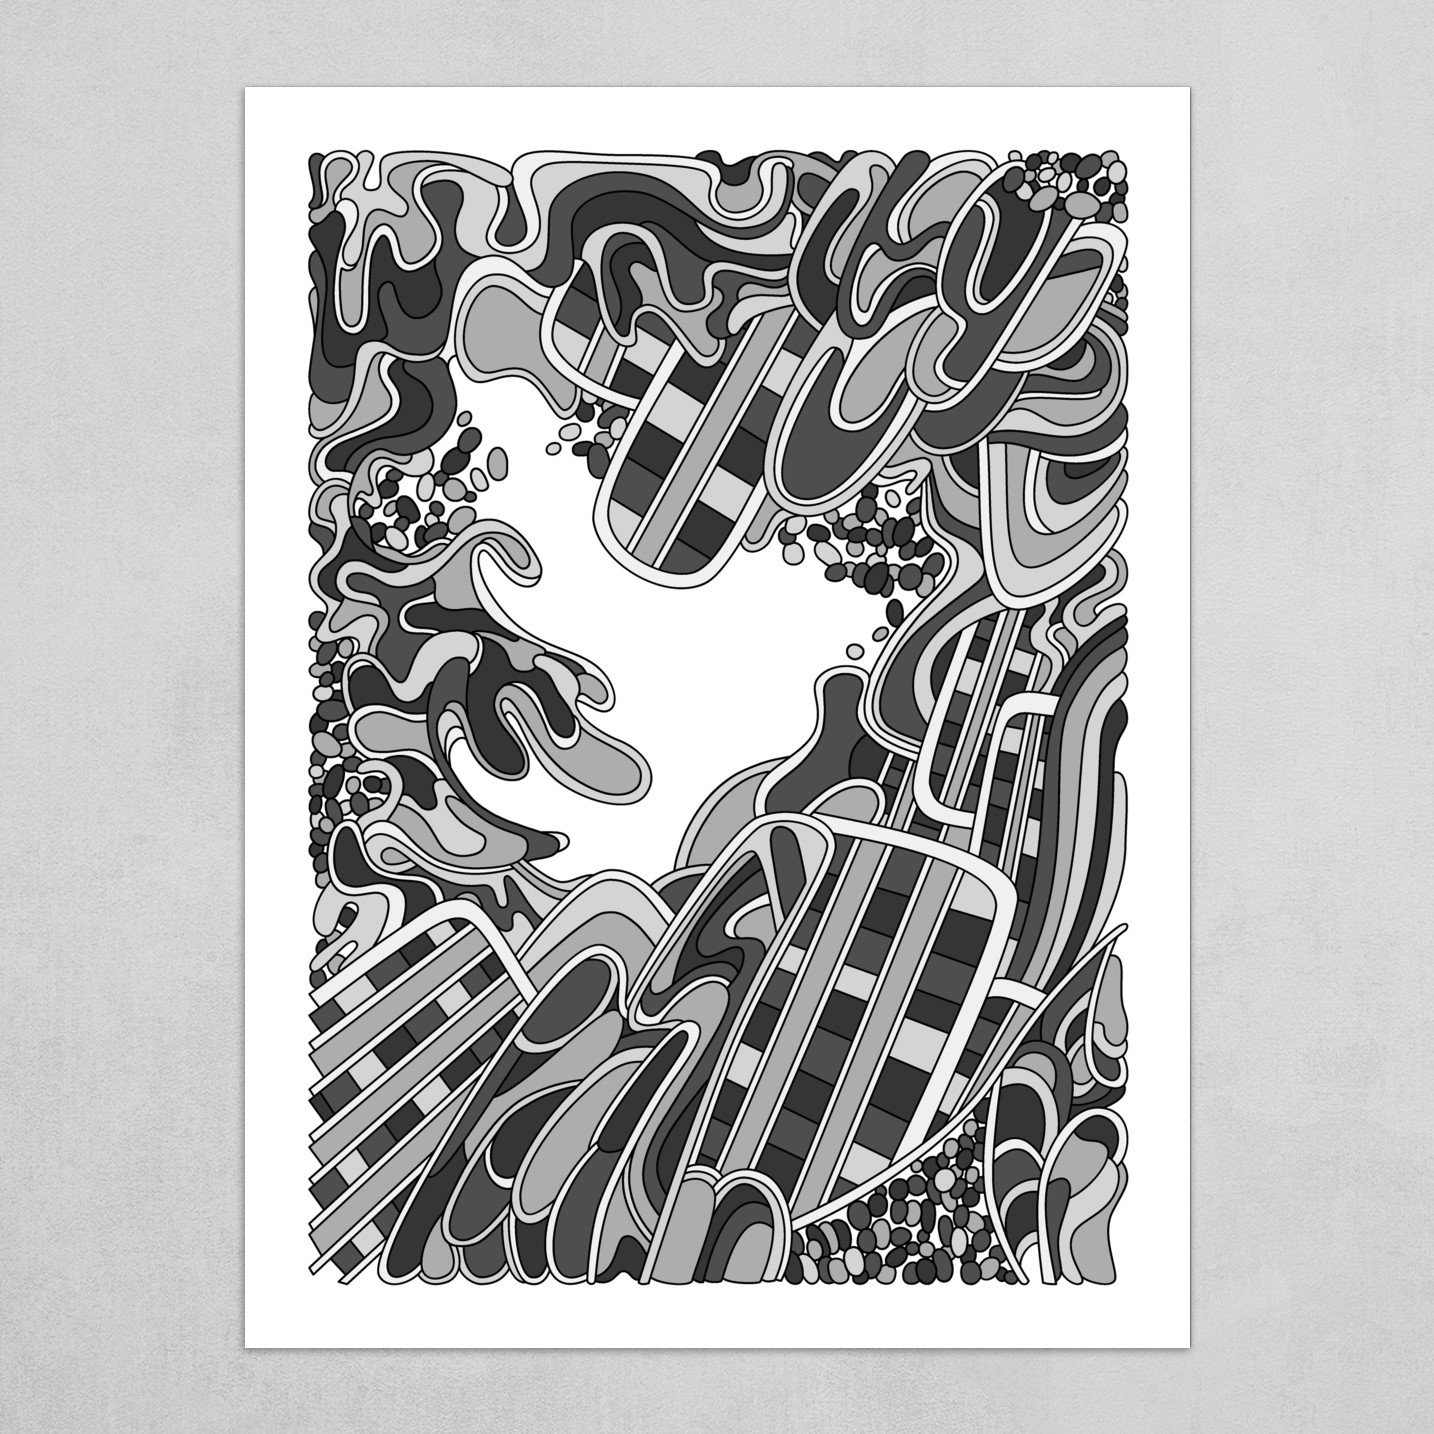 Wandering Abstract Line Art 36: Grayscale